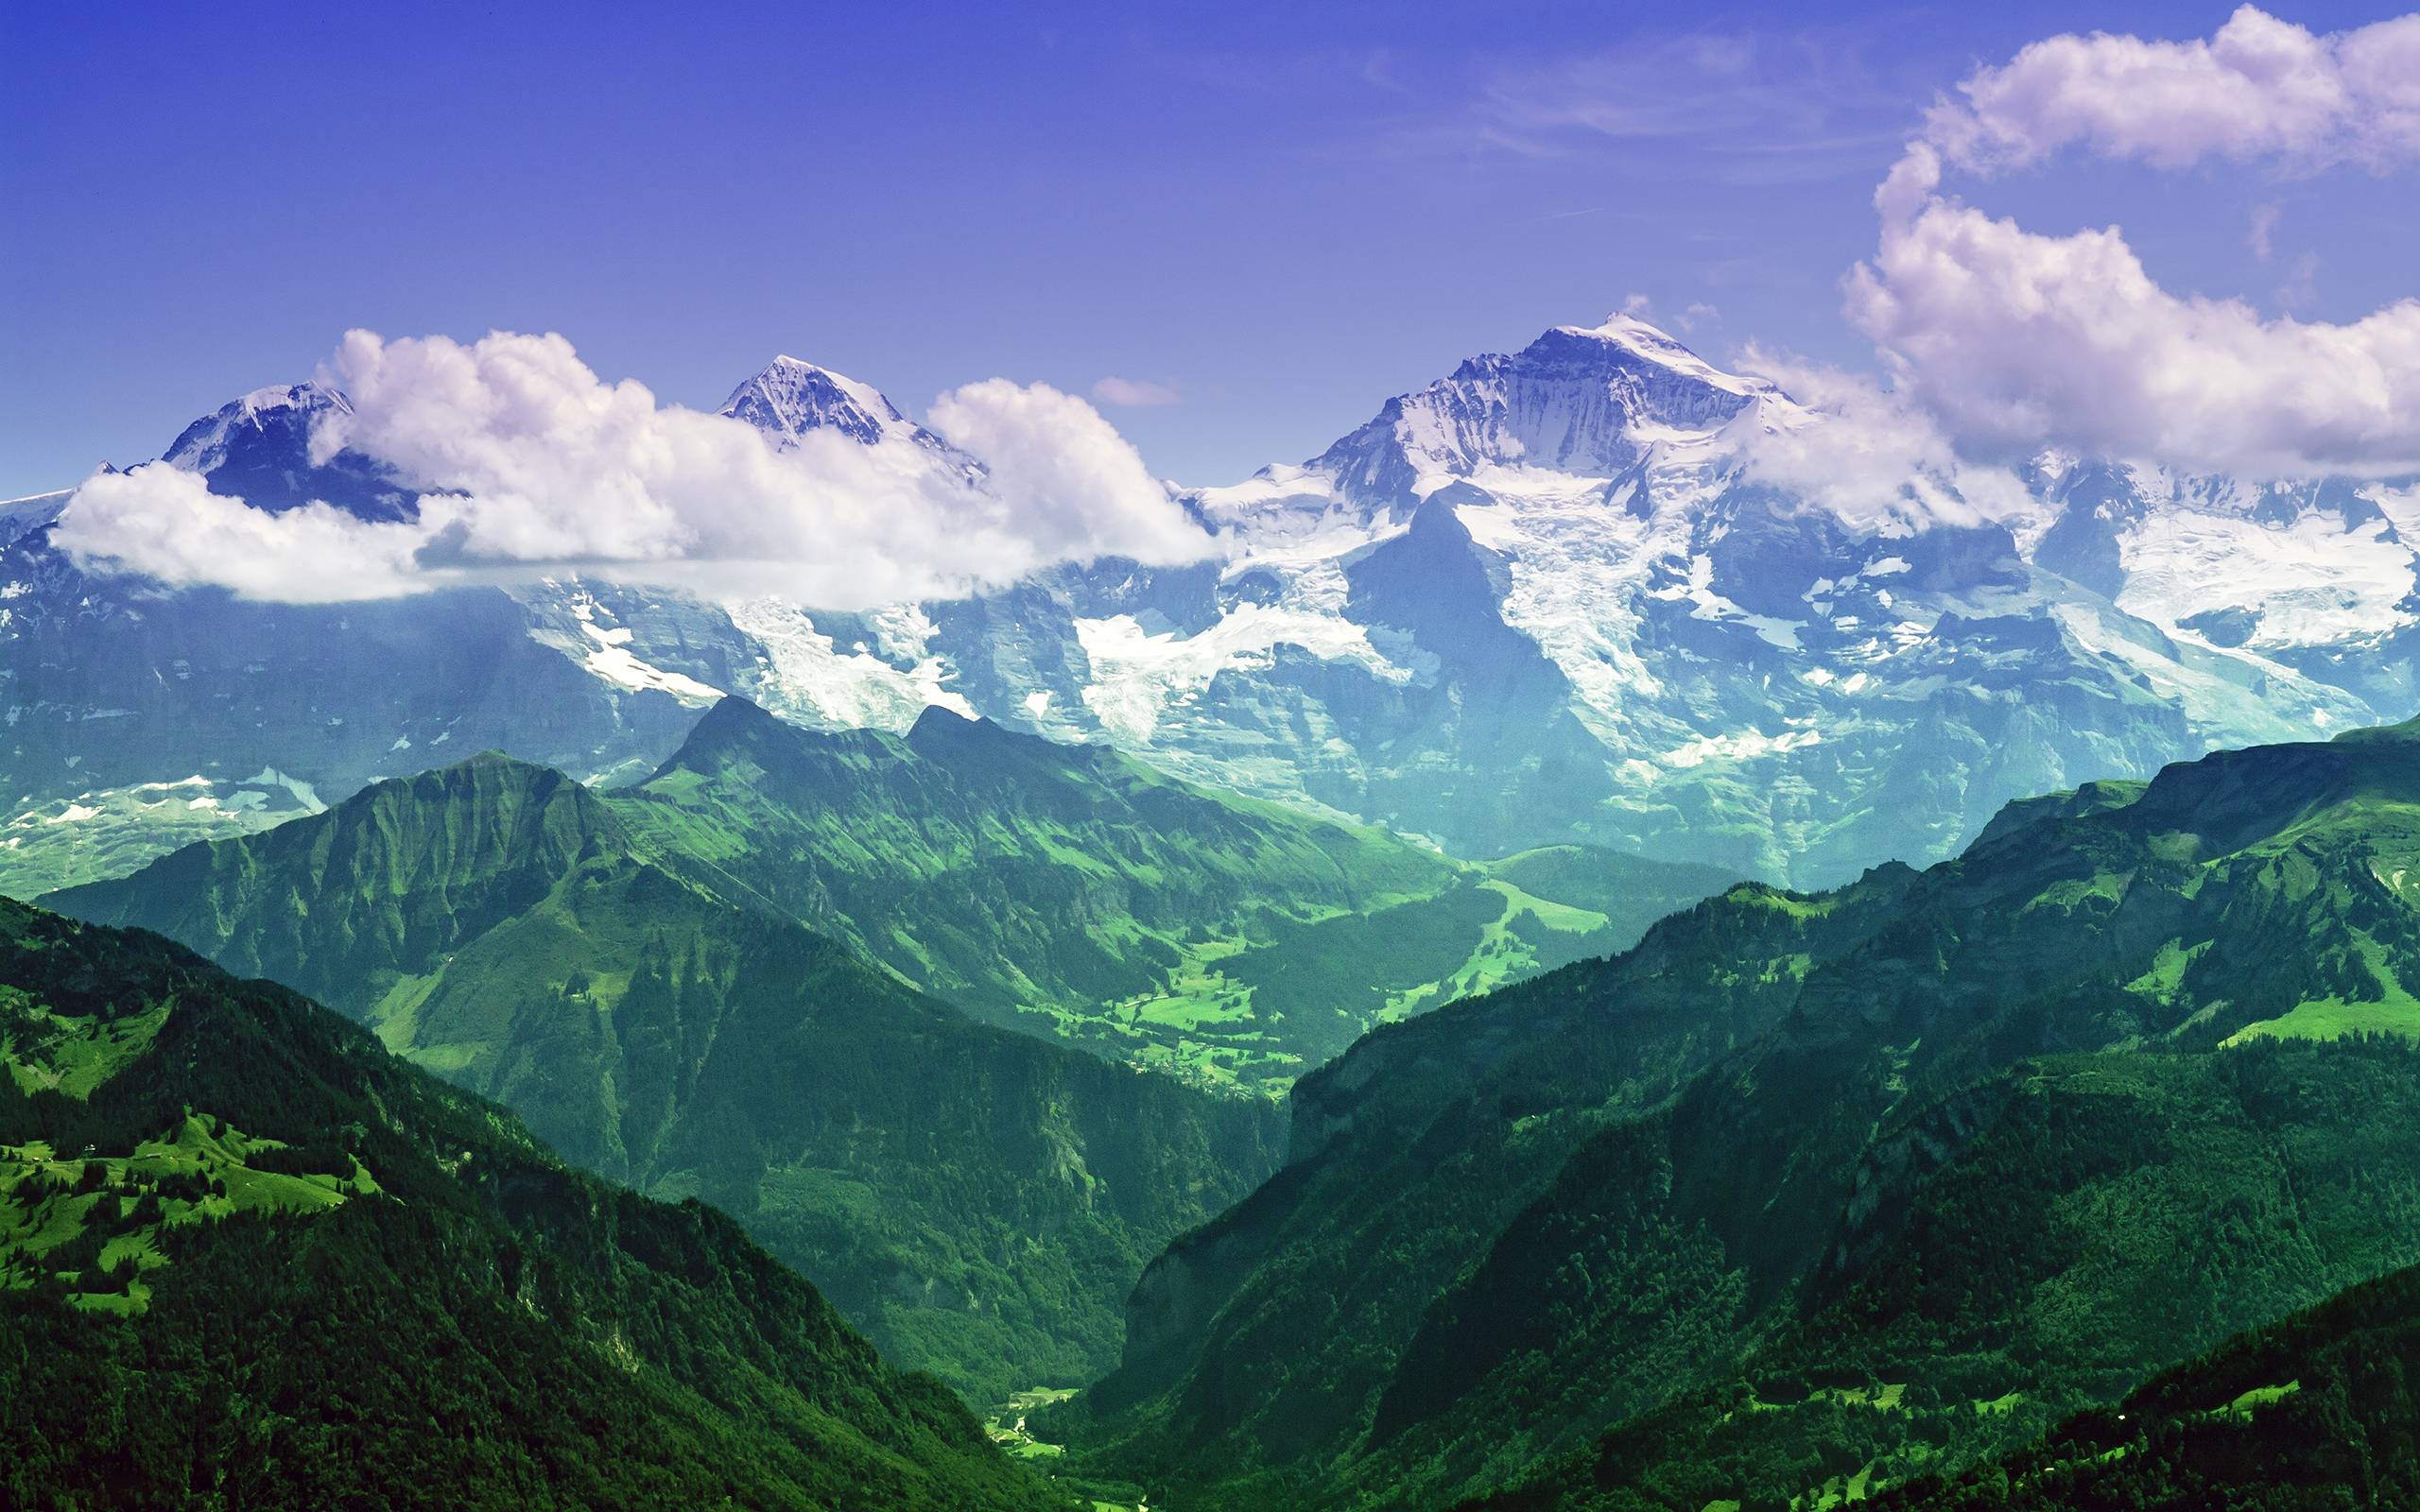 The Mighty Jungfrau   Burmese Alps [2560x1600] by Unkown EarthPorn 2560x1600